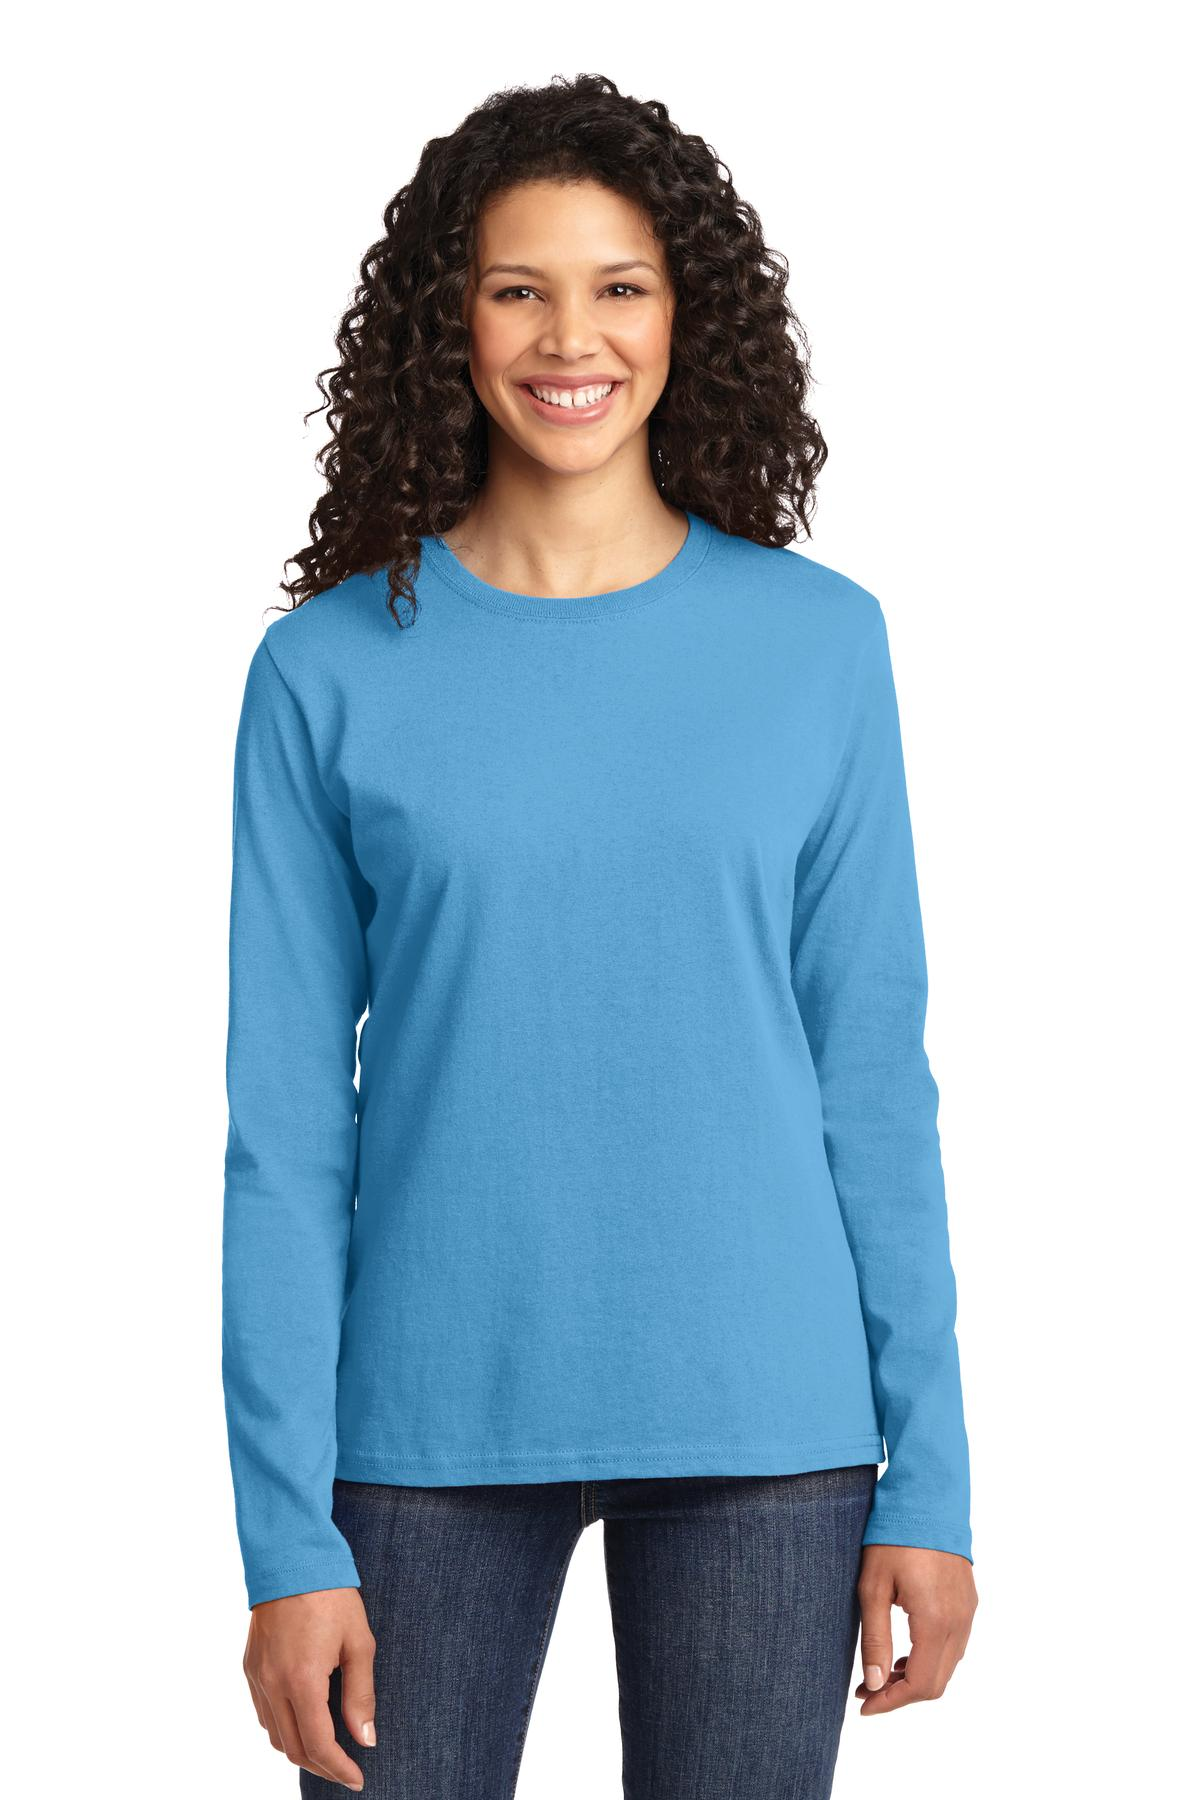 Port & Company Ladies Long Sleeve 5.4-oz 100% Cotton T-Shirt. LPC54LS